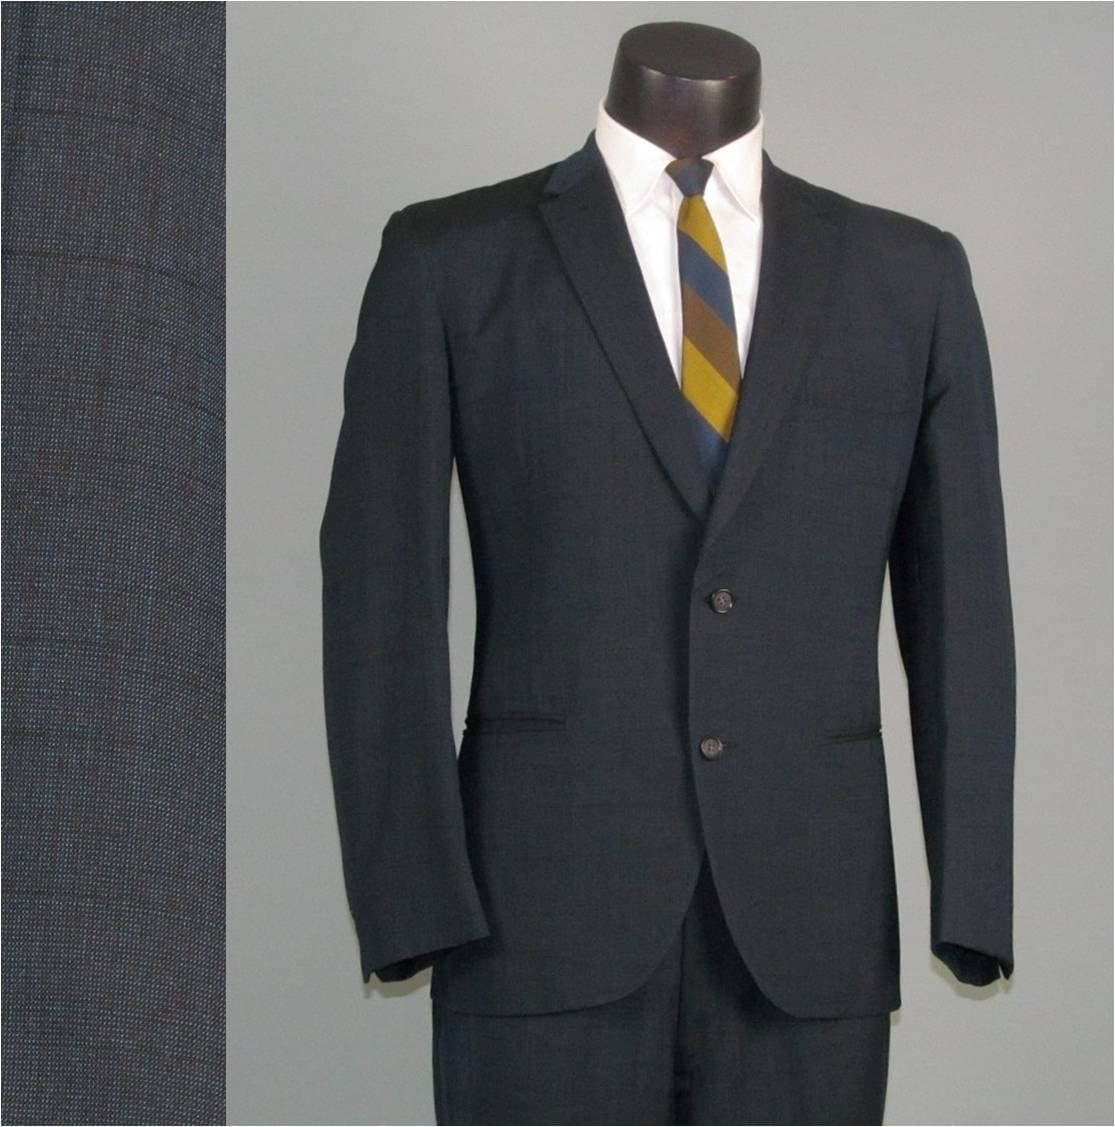 S Style Mens Suits - New Suits Vintage Style